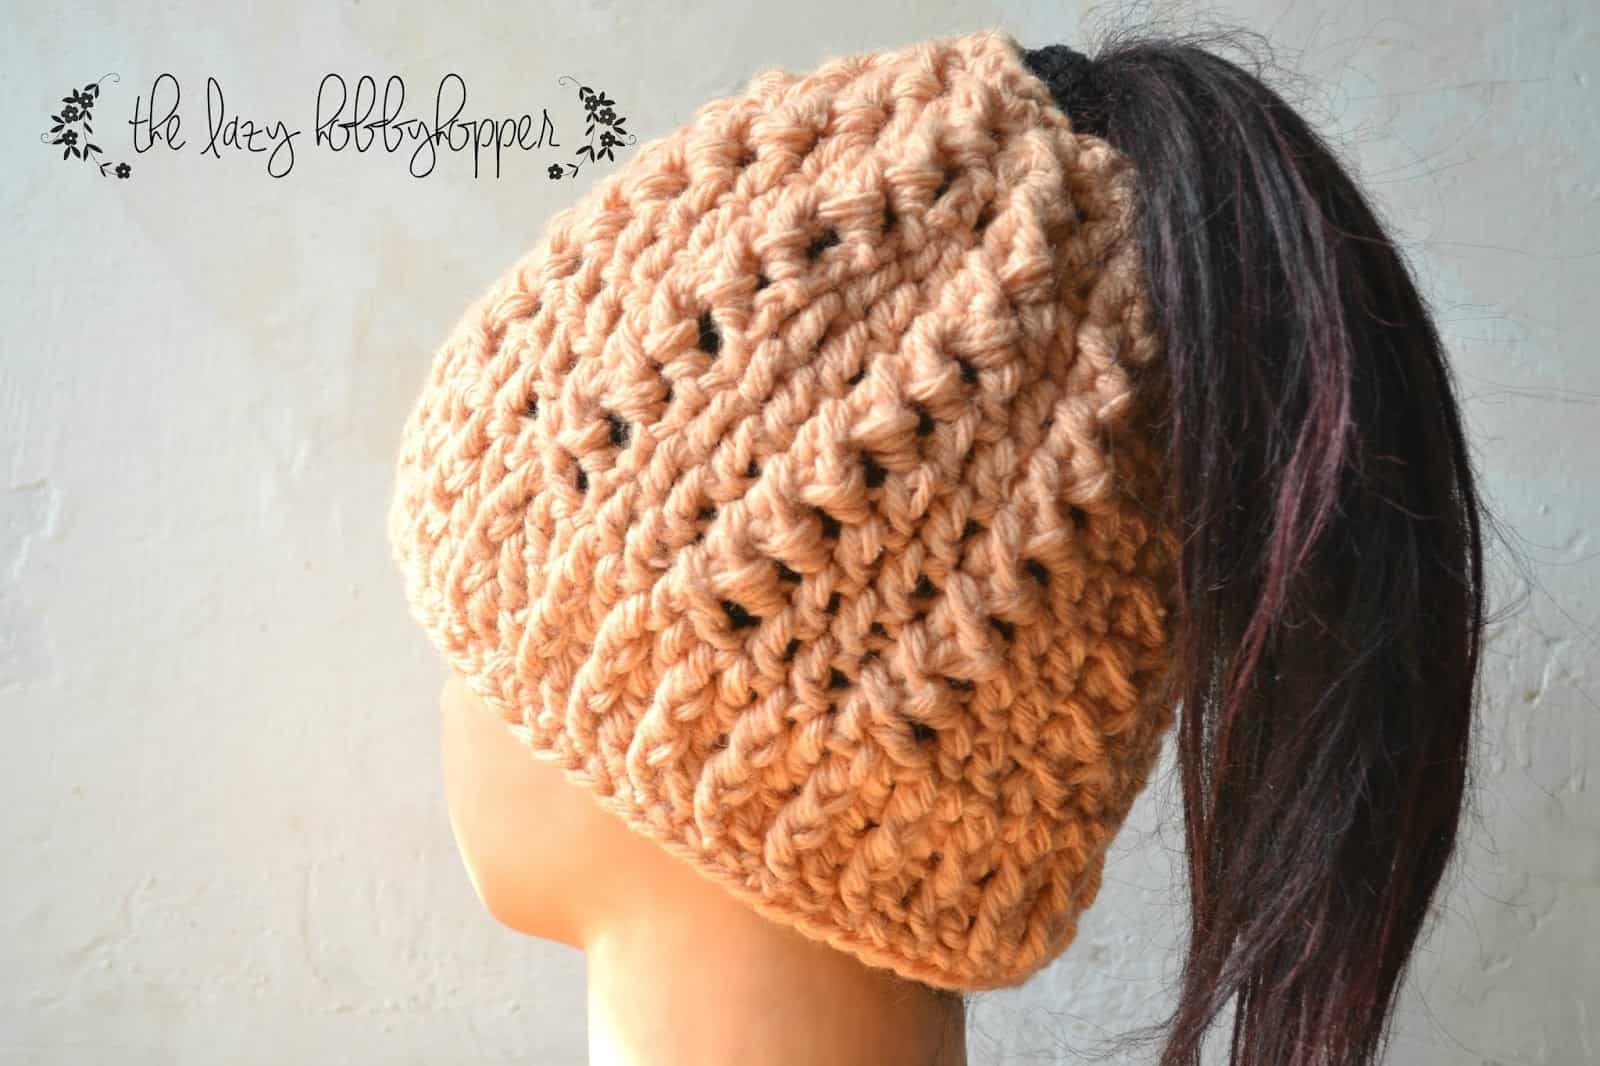 25 Crochet Ponytail Hats